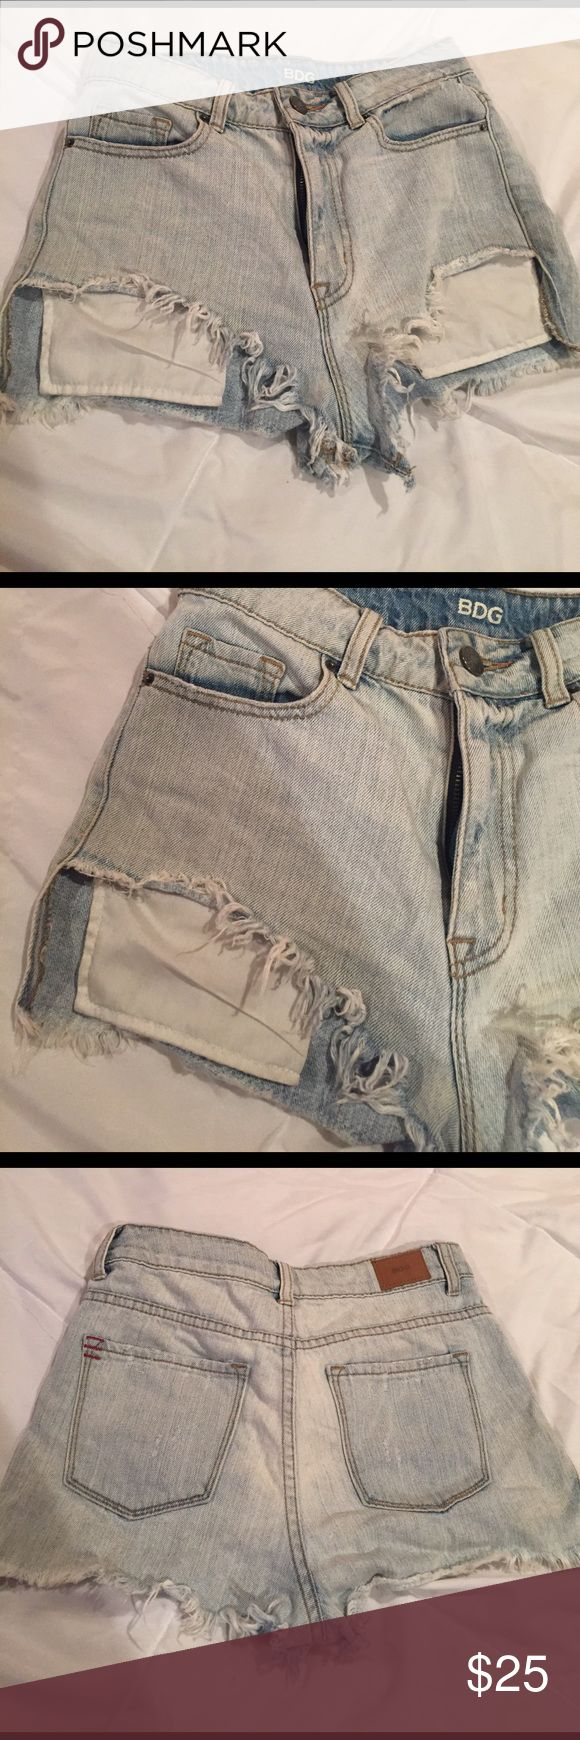 Urban Outfitter jean shorts Never worn jean shorts. High rise, high- low shorties. Shorter I'm the front with pockets coming down. Light wash. Urban Outfitters Shorts Jean Shorts